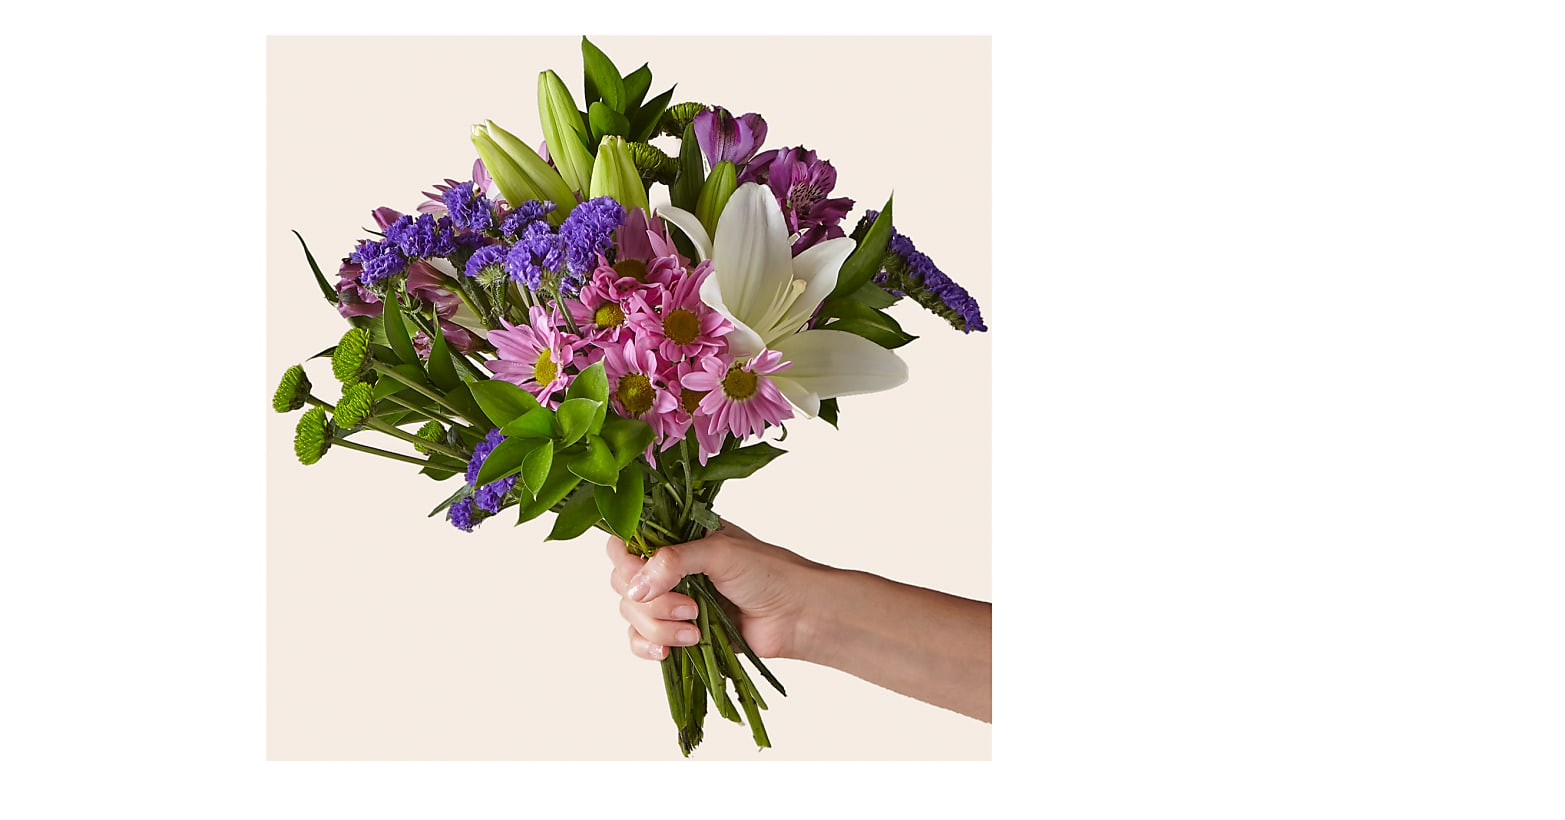 Lavender Fields Mixed Flower Bouquet - Image 1 Of 3